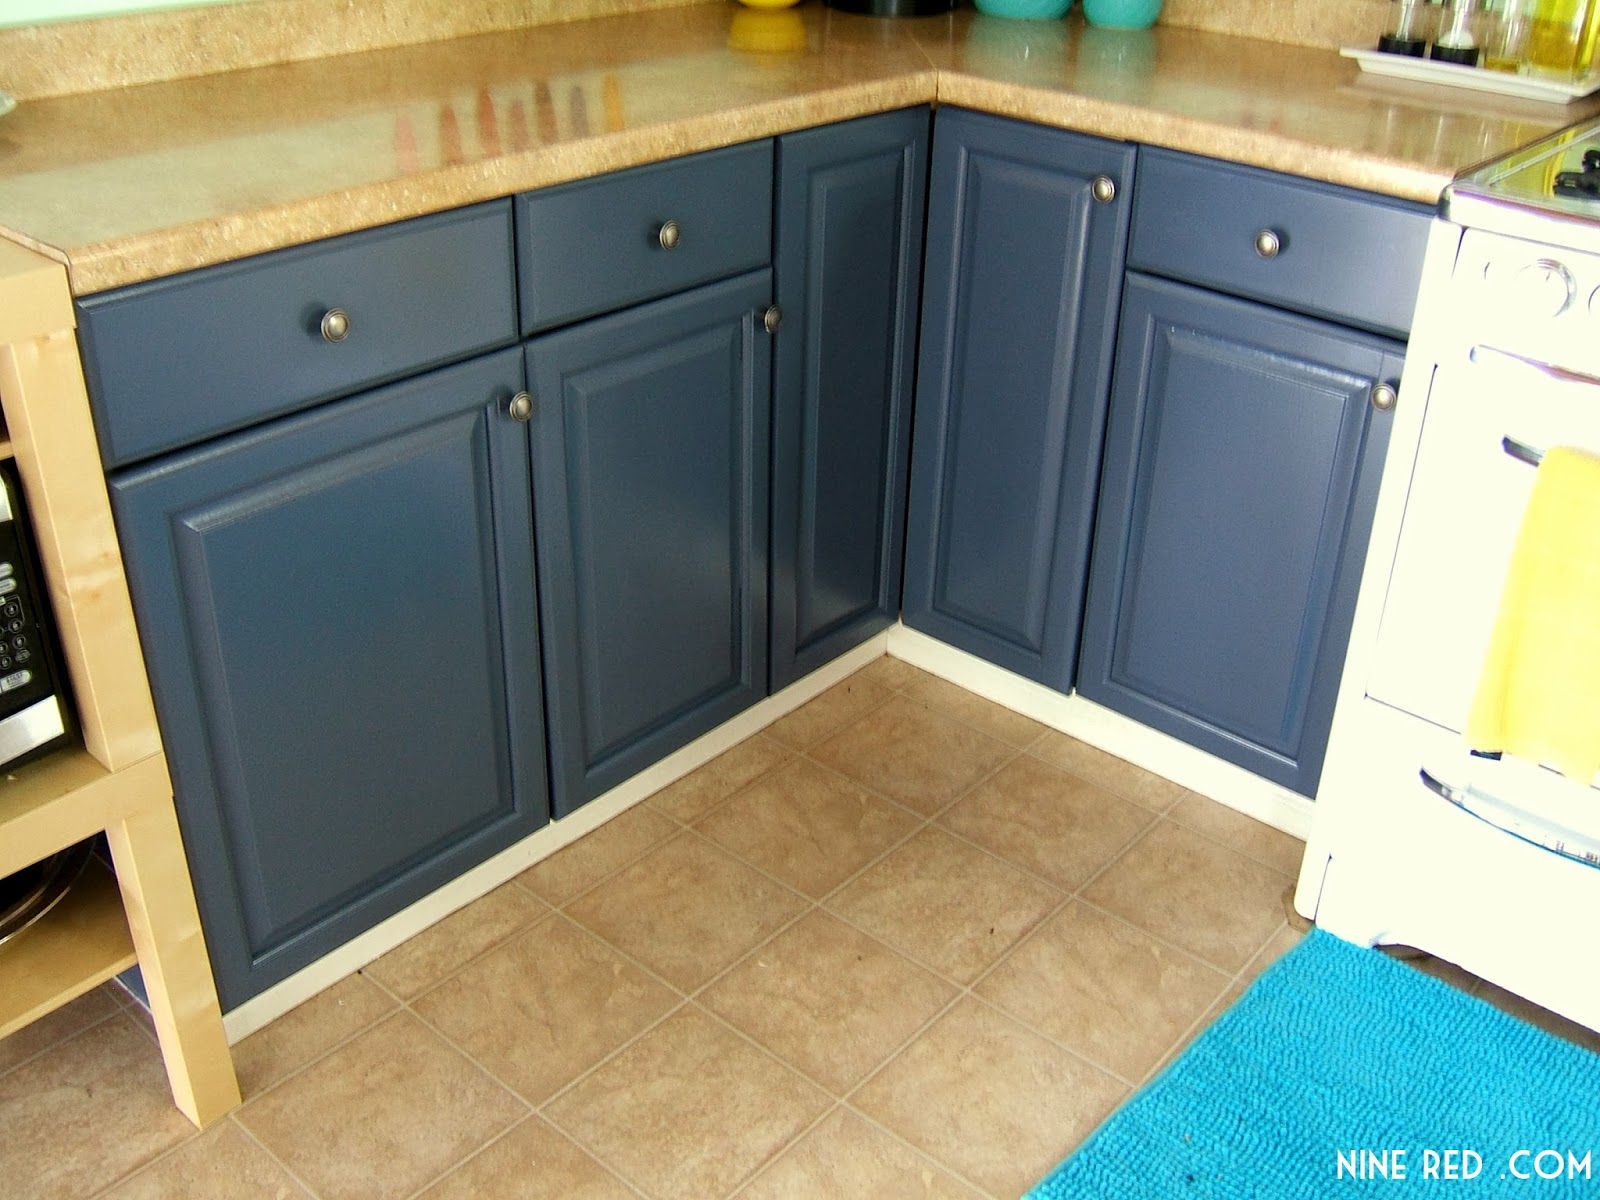 nine red painting the kitchen cabinets part 2